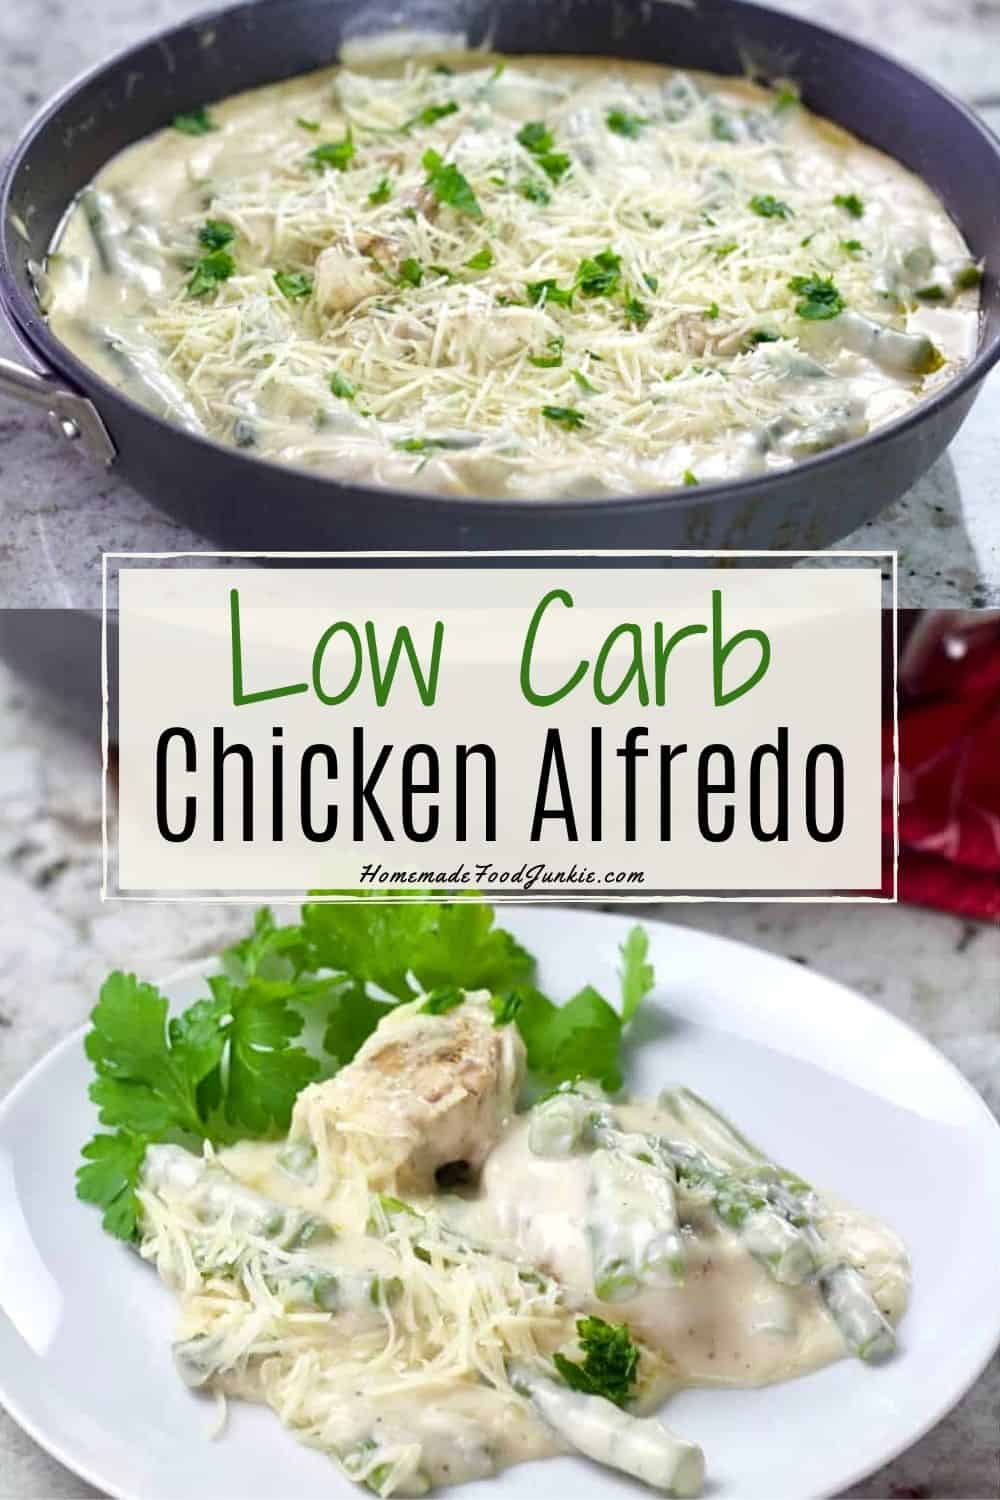 Low Carb Chicken Alfredo-pin image